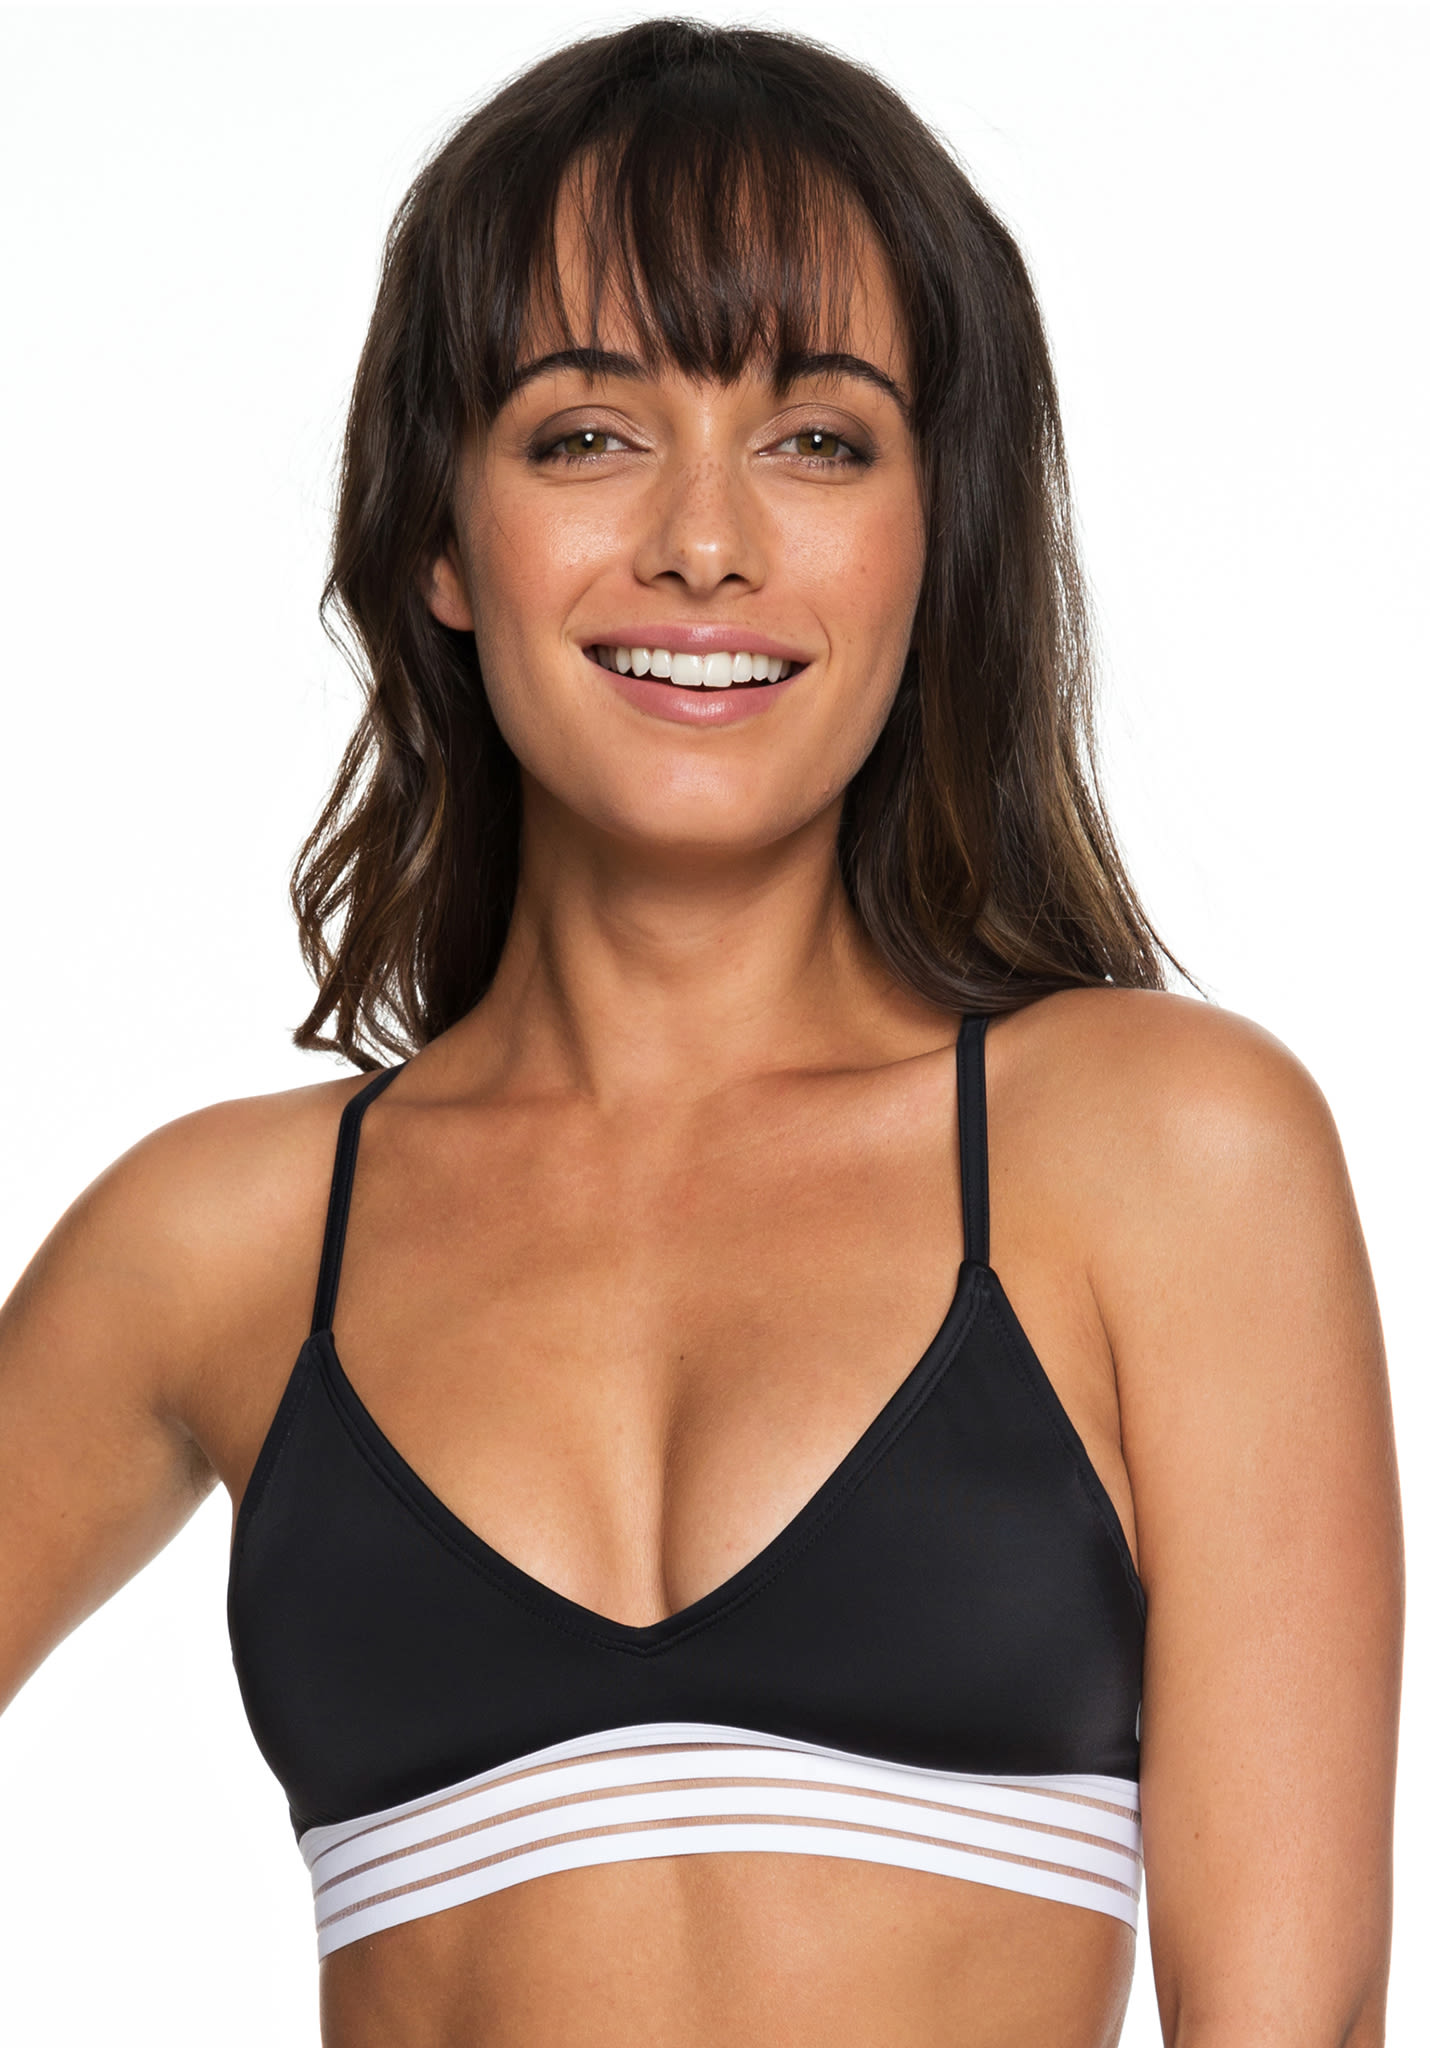 4aed95c068 Roxy Fitness SD Mod Athletic Tri - Bikini Top for Women - Black - Planet  Sports